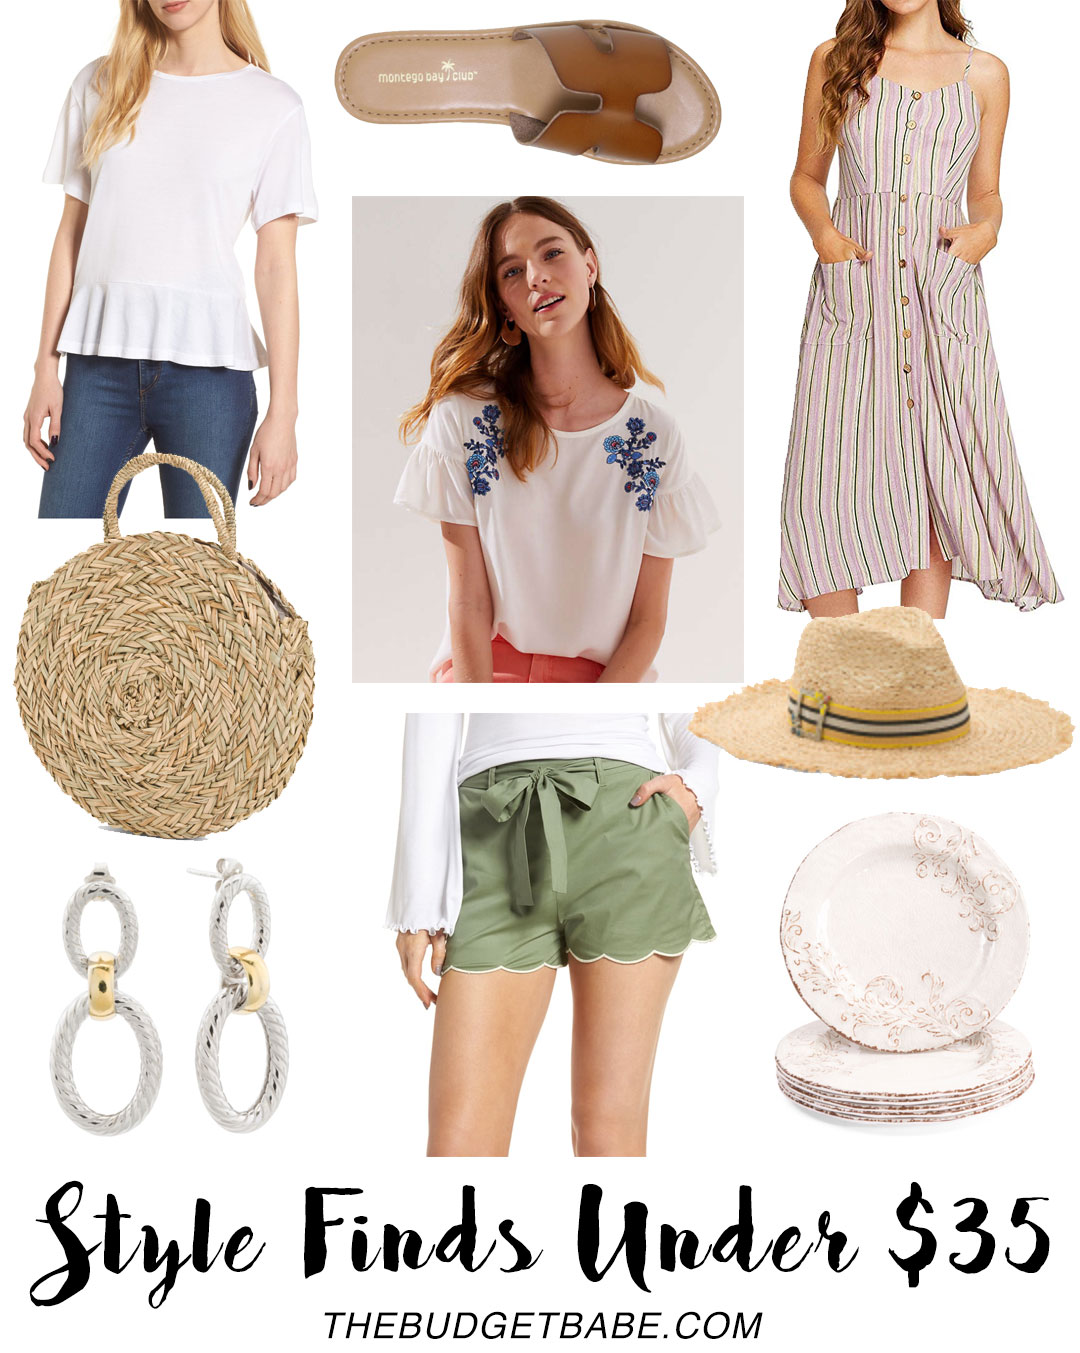 Style finds under $35 on The Budget Babe - need those cute shorts!